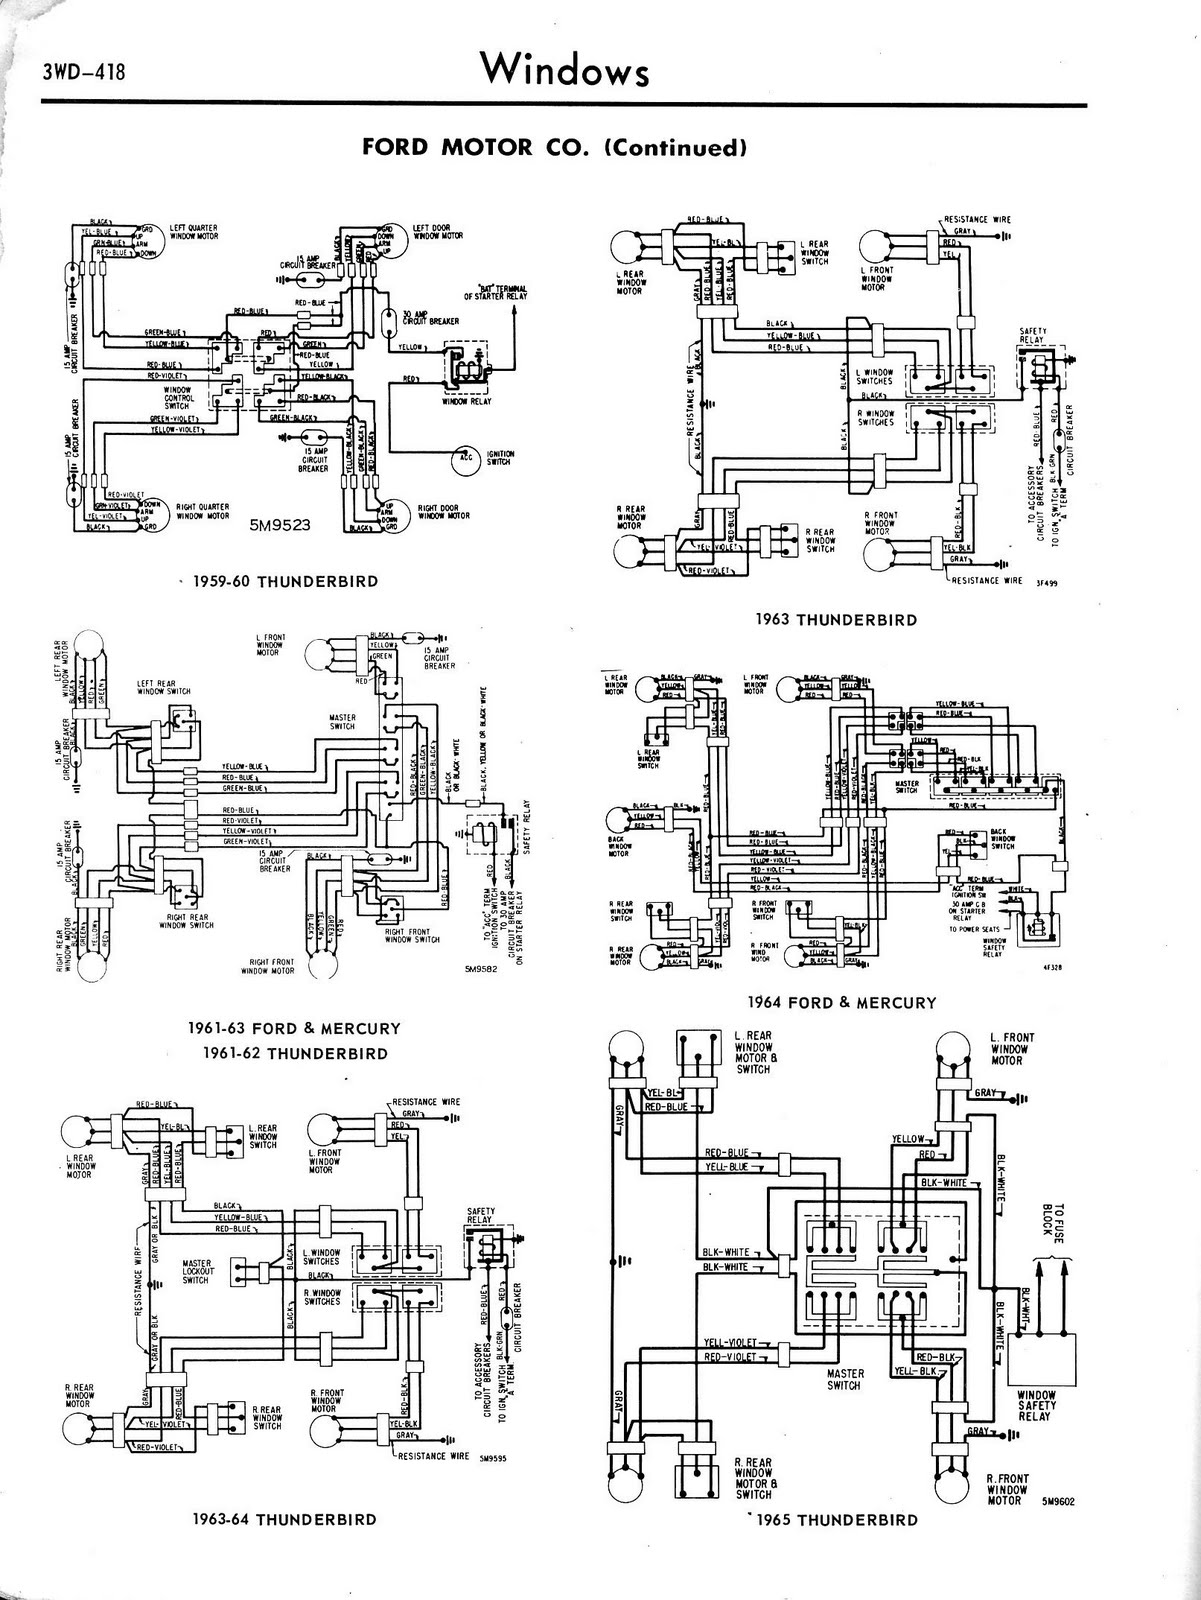 1965+Ford+Thunderbird+Window+Controls+Diagram wiring diagram for 1972 ford f100 the wiring diagram 66 Thunderbird Wiring Diagram at edmiracle.co